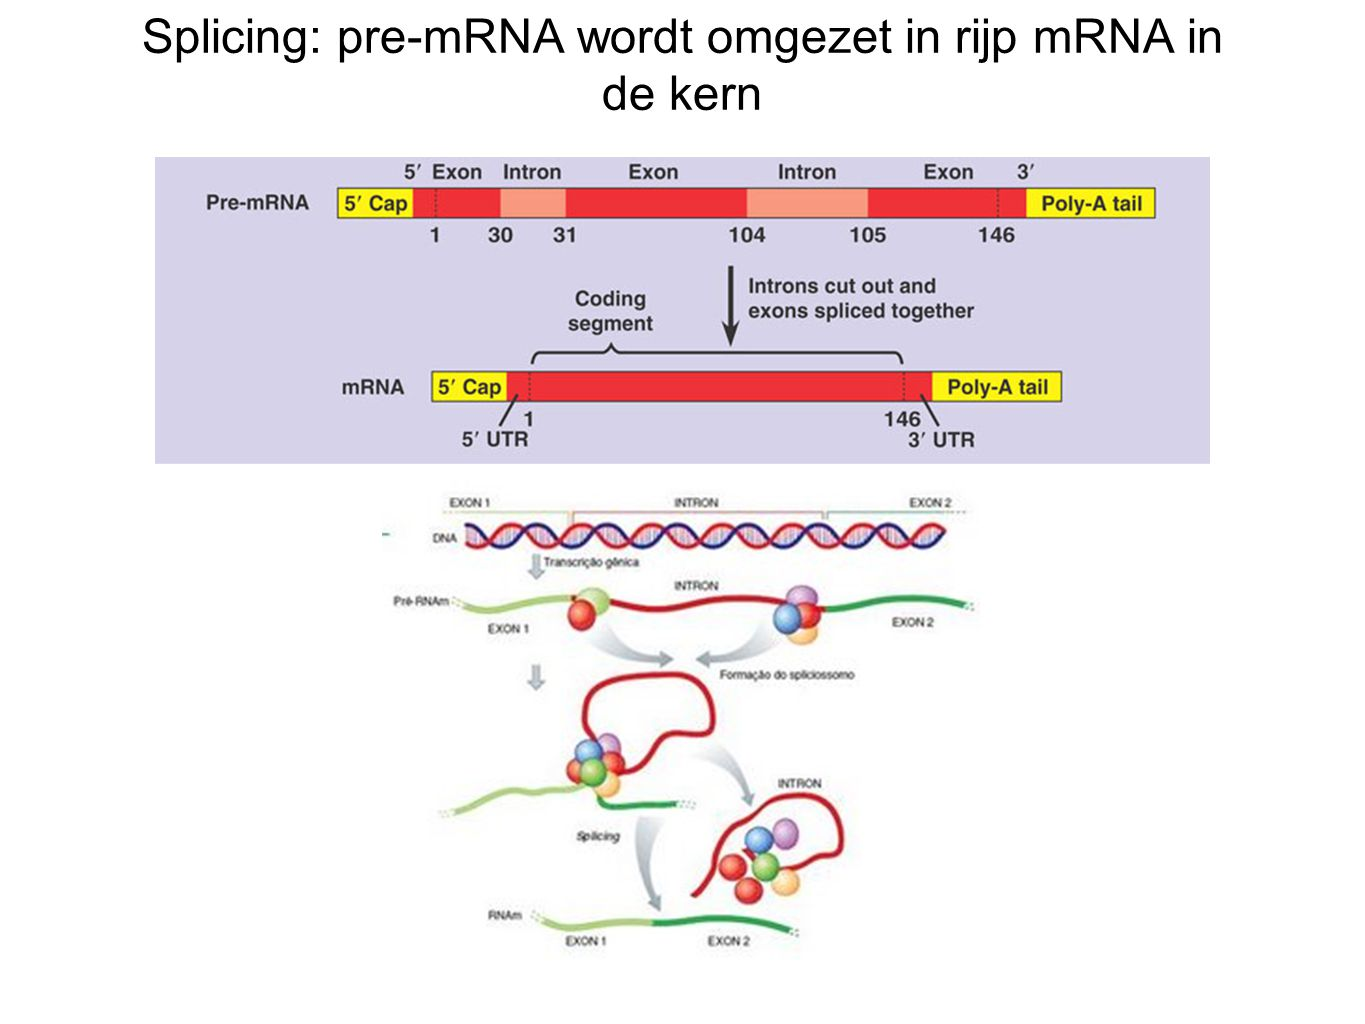 Splicing: pre-mRNA wordt omgezet in rijp mRNA in de kern